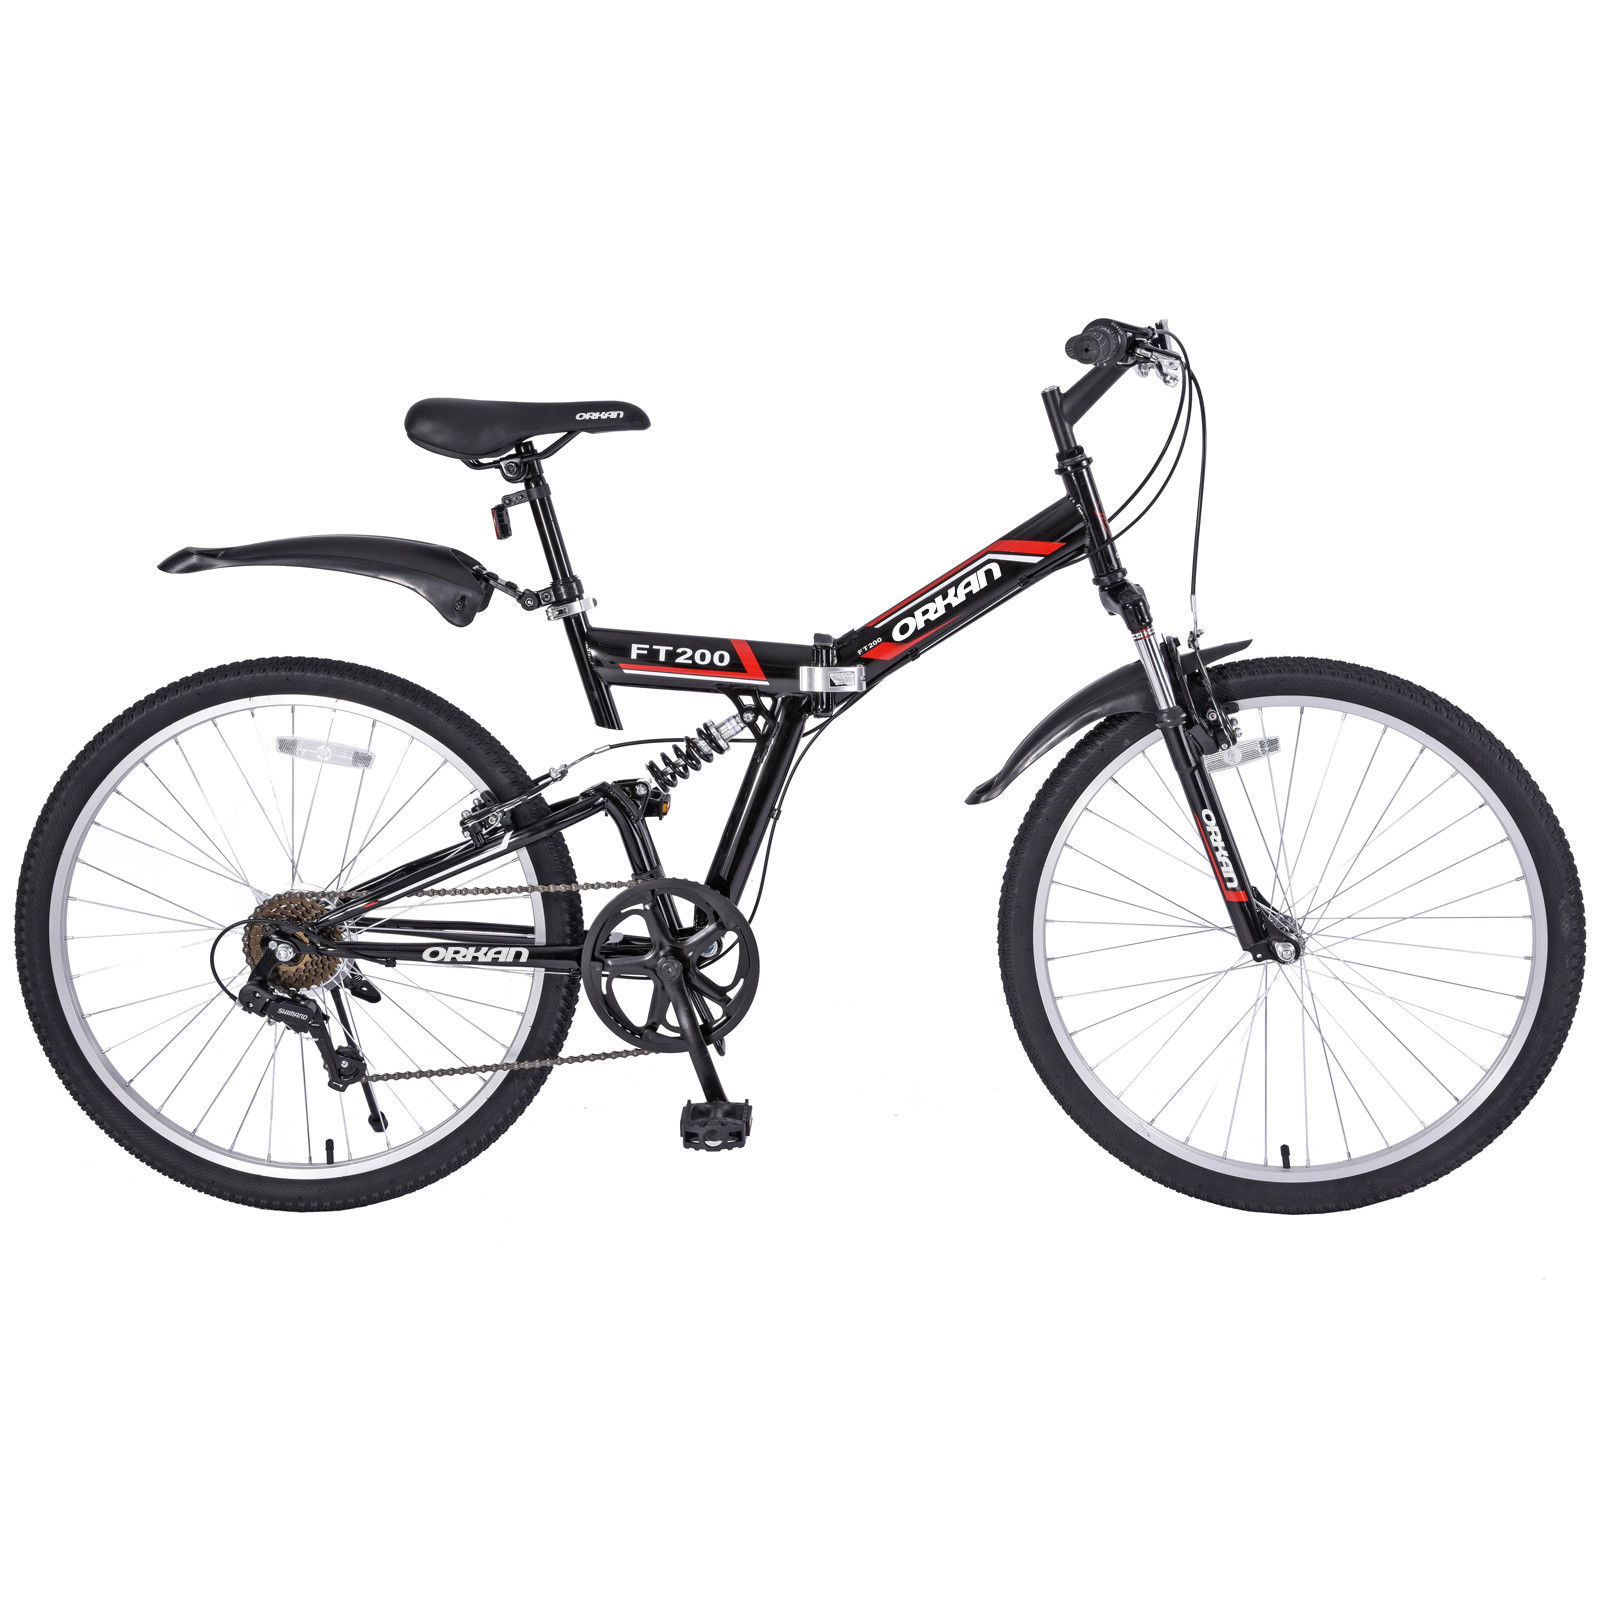 "Uenjoy 26"" Mountain Bike Folding Bicycle 7 Speed Shimano Hybrid Suspension School Sport,Black"